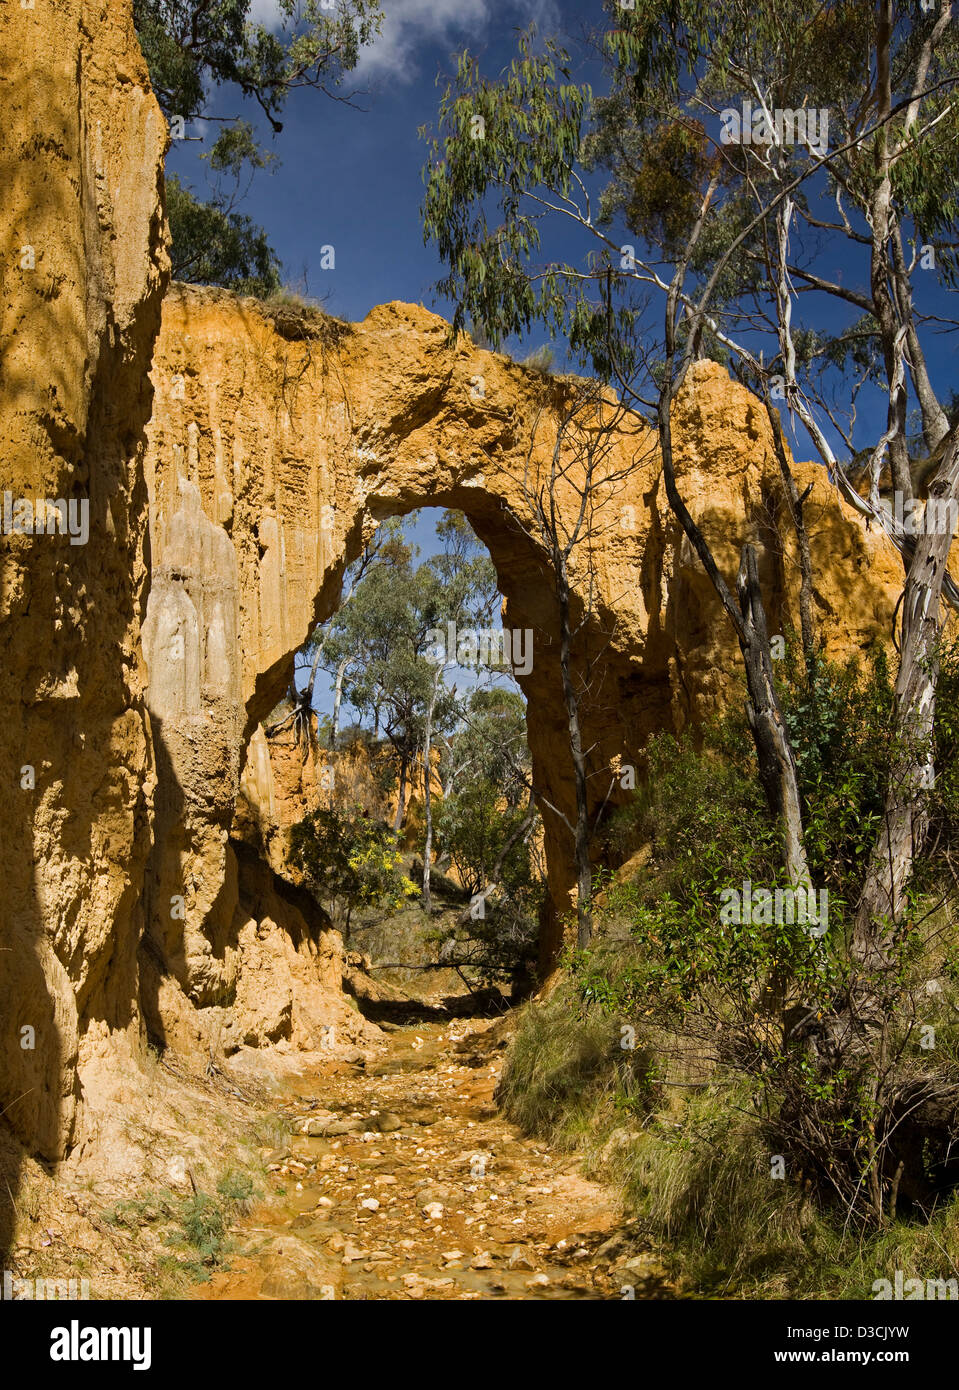 Nature arch carved by wind and water erosion along creek at Golden Gully - former gold mining area near Hill End - Stock Image